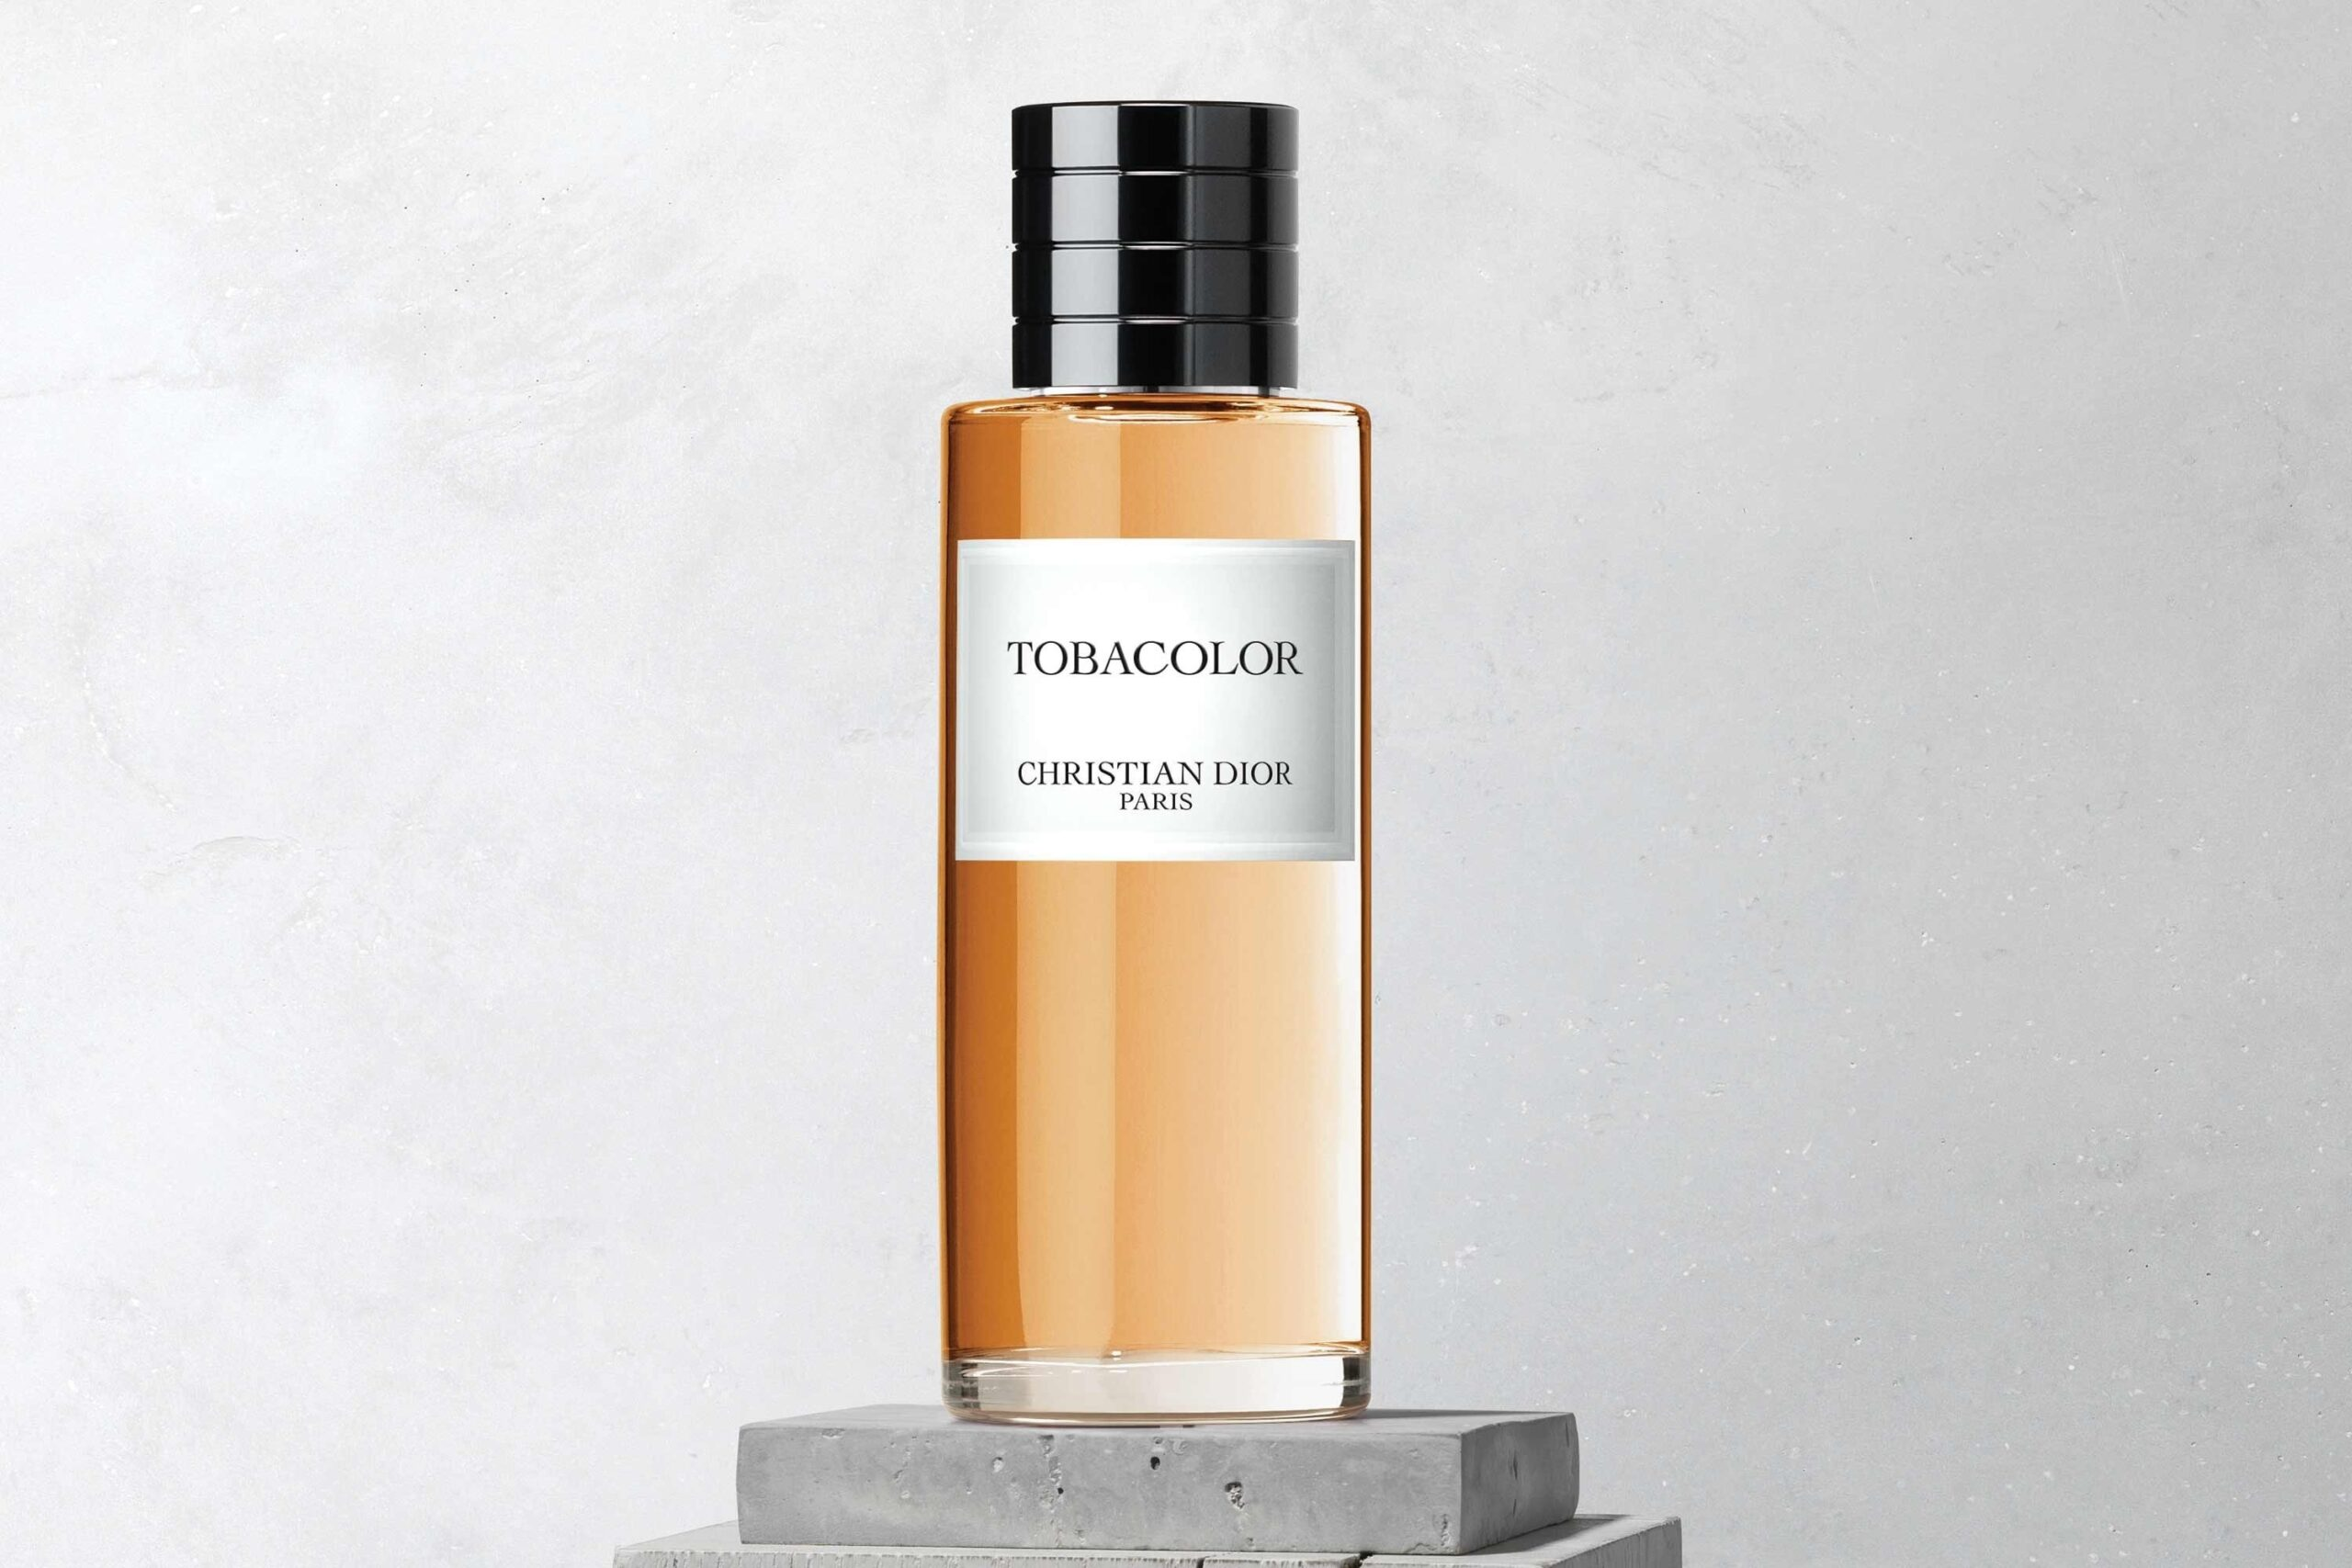 Dior Tabacolor 40 mL opinie